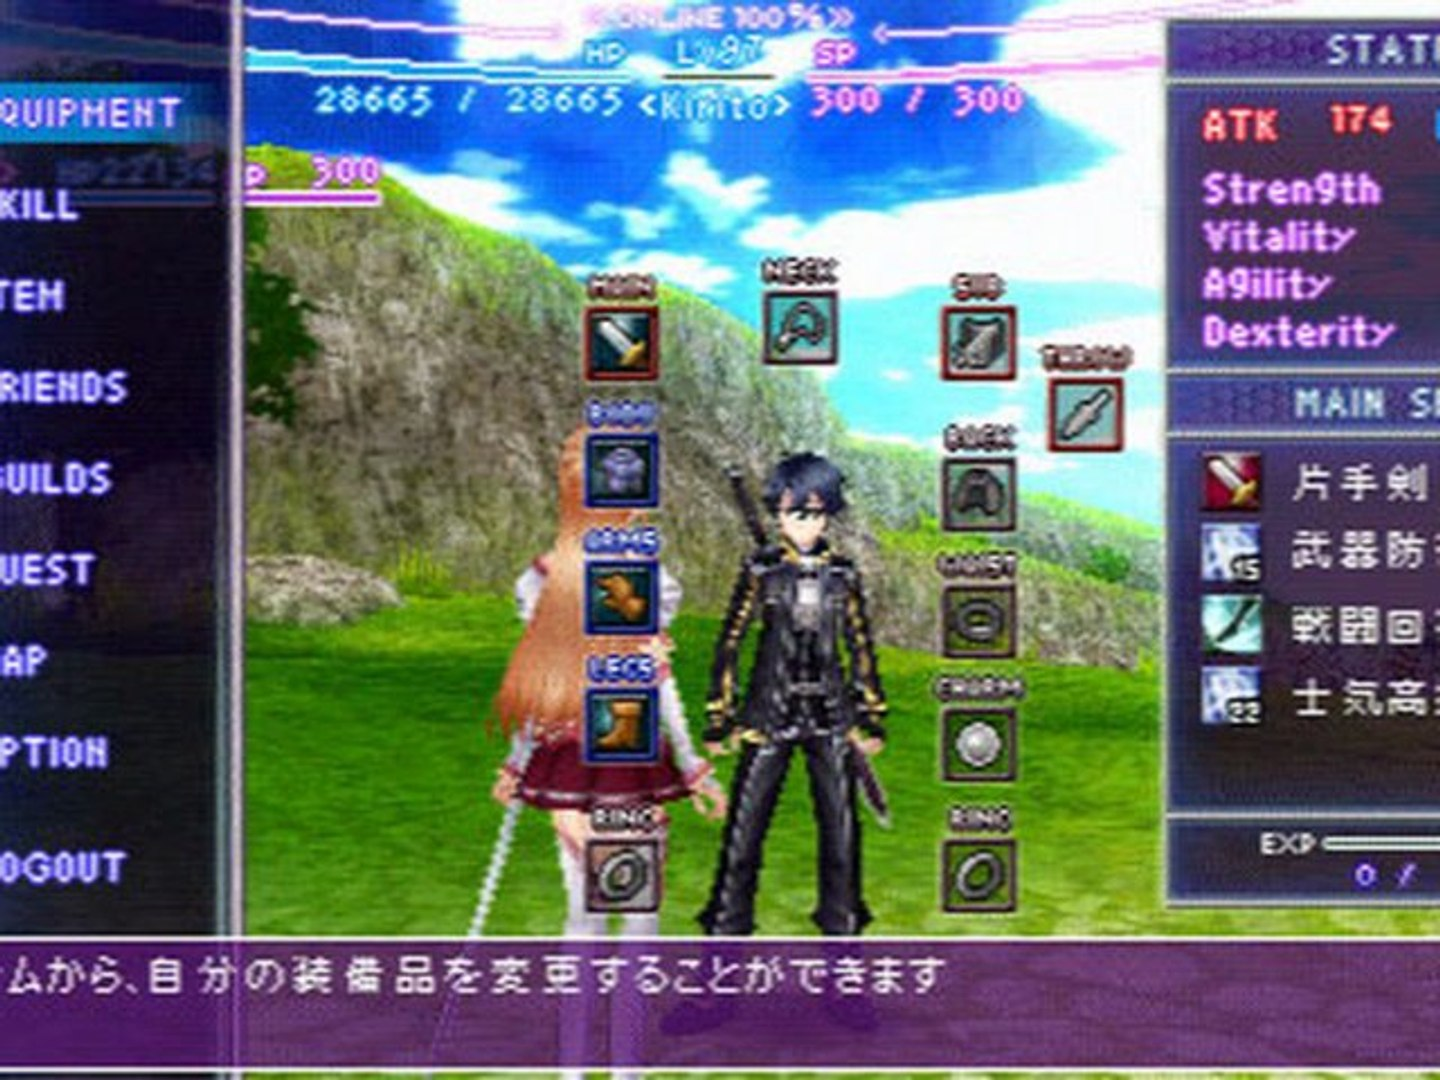 Psp Sword Art Online Infinity Moment Iso Psp Download Link Usa Video Dailymotion